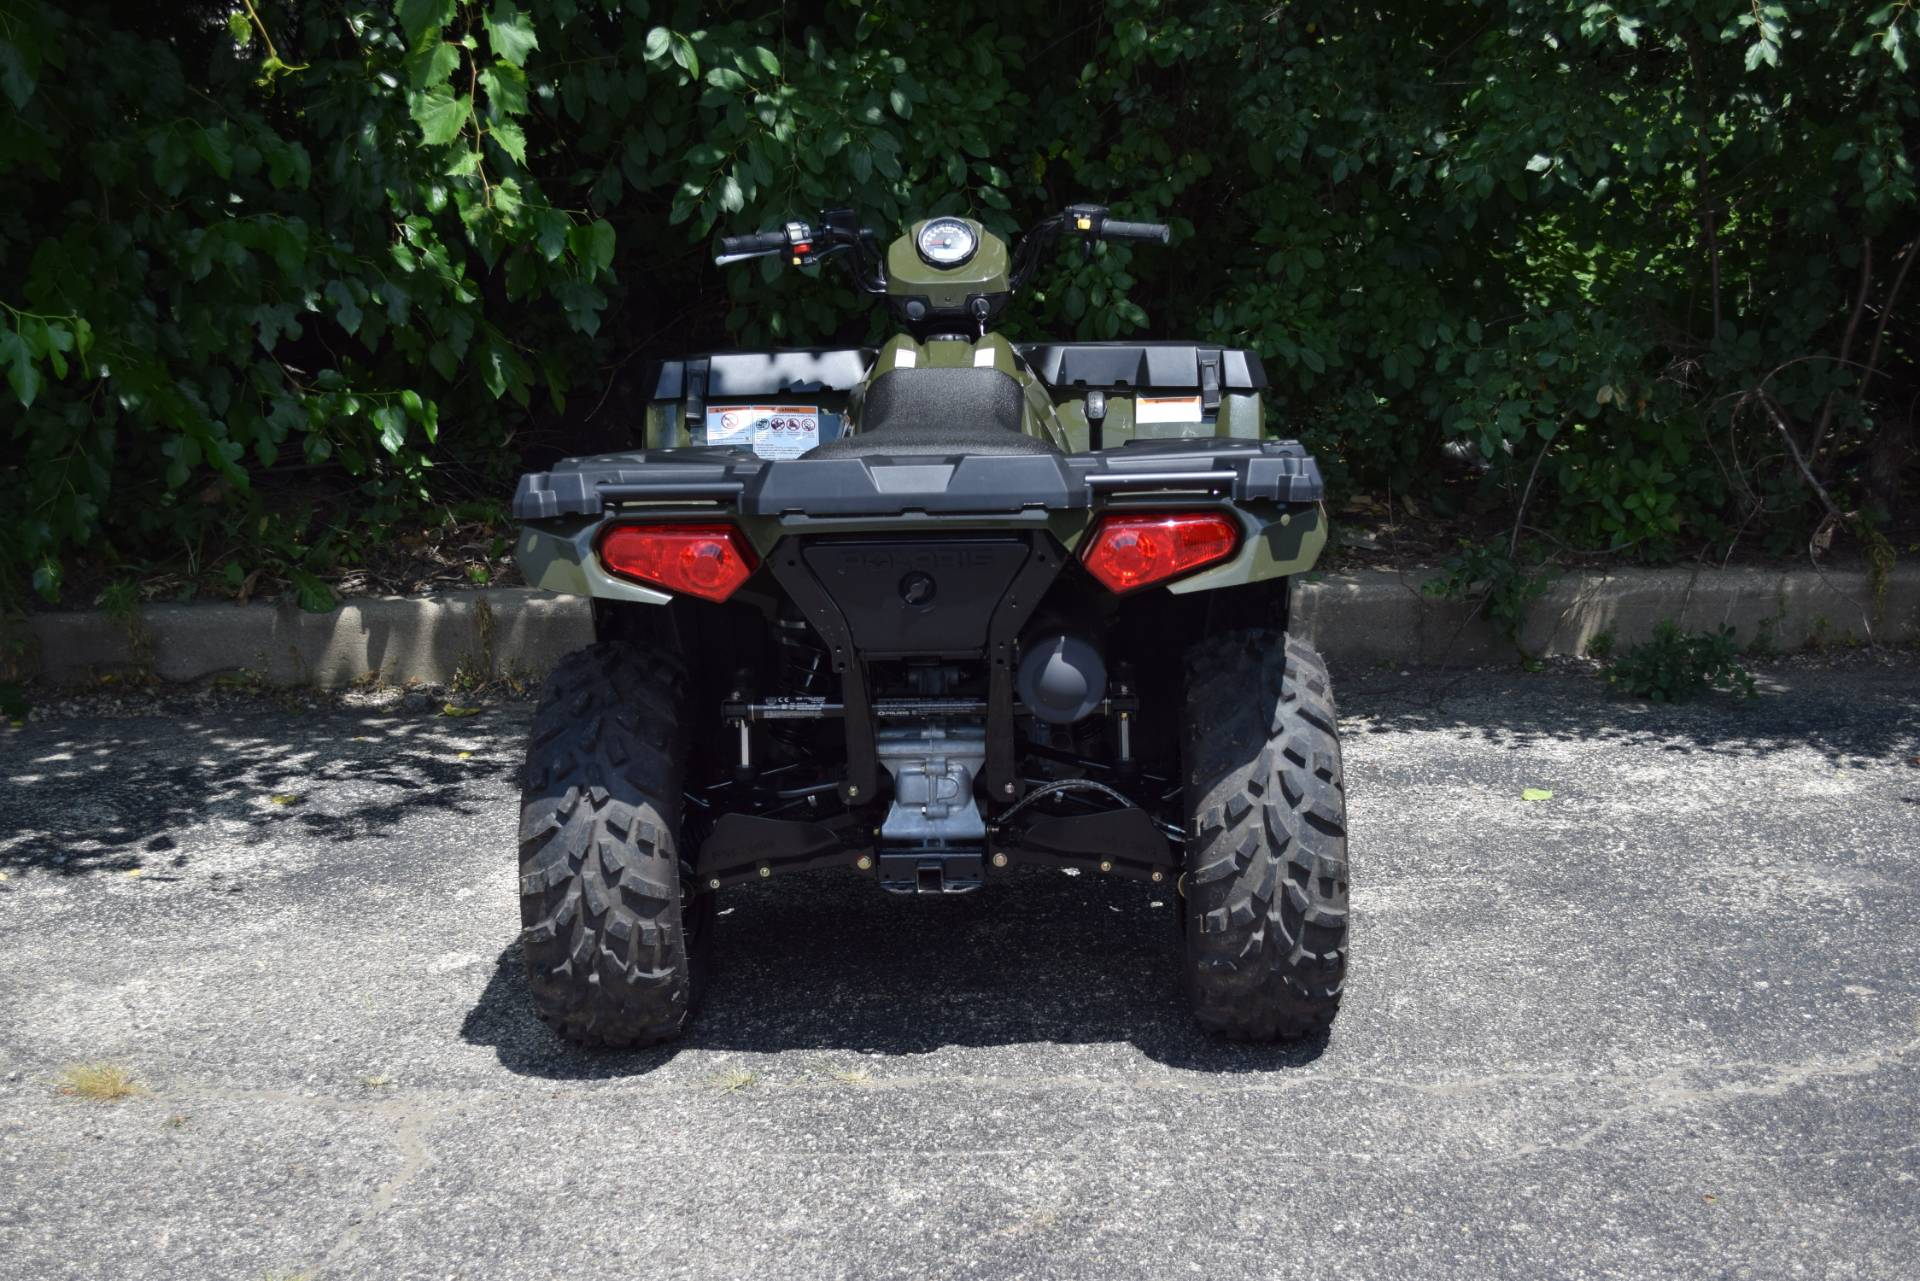 2016 Polaris Sportsman 570 in Wauconda, Illinois - Photo 26